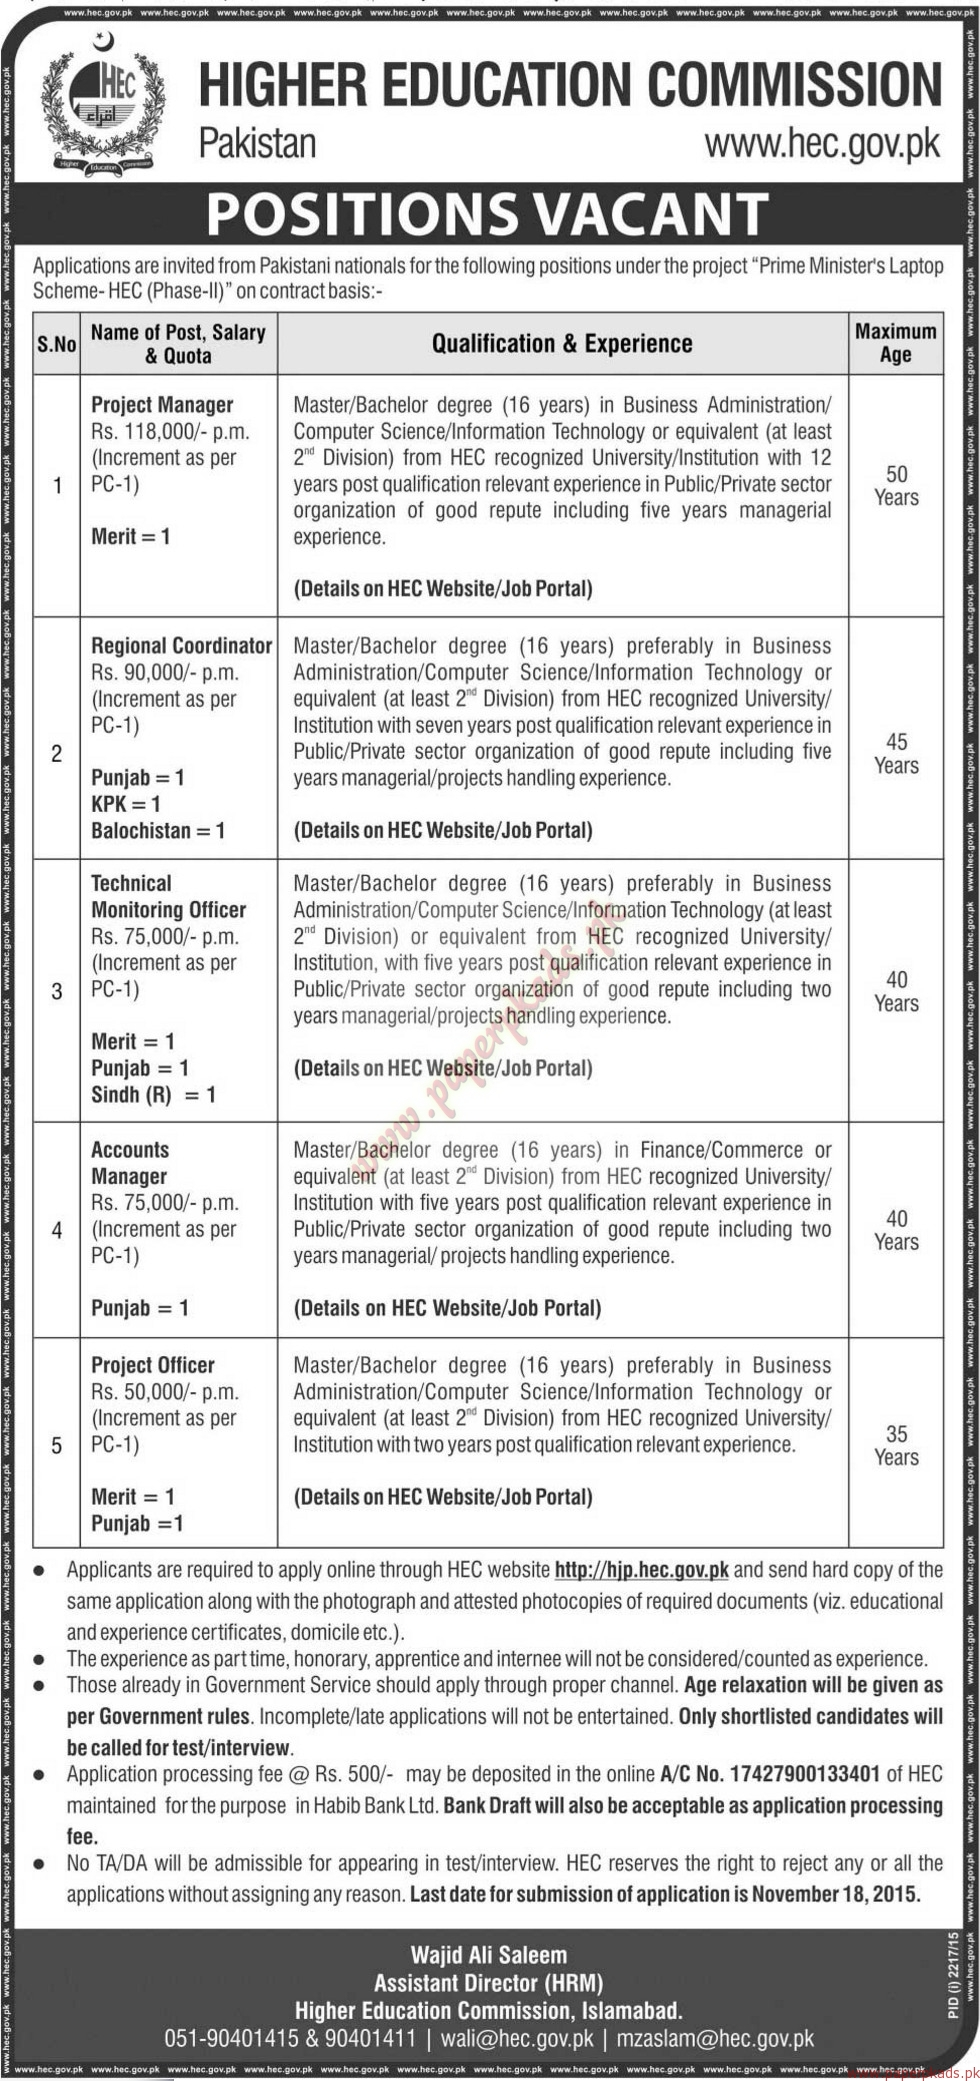 Higher Education Commission Jobs - Jang Jobs ads 03 November 2015